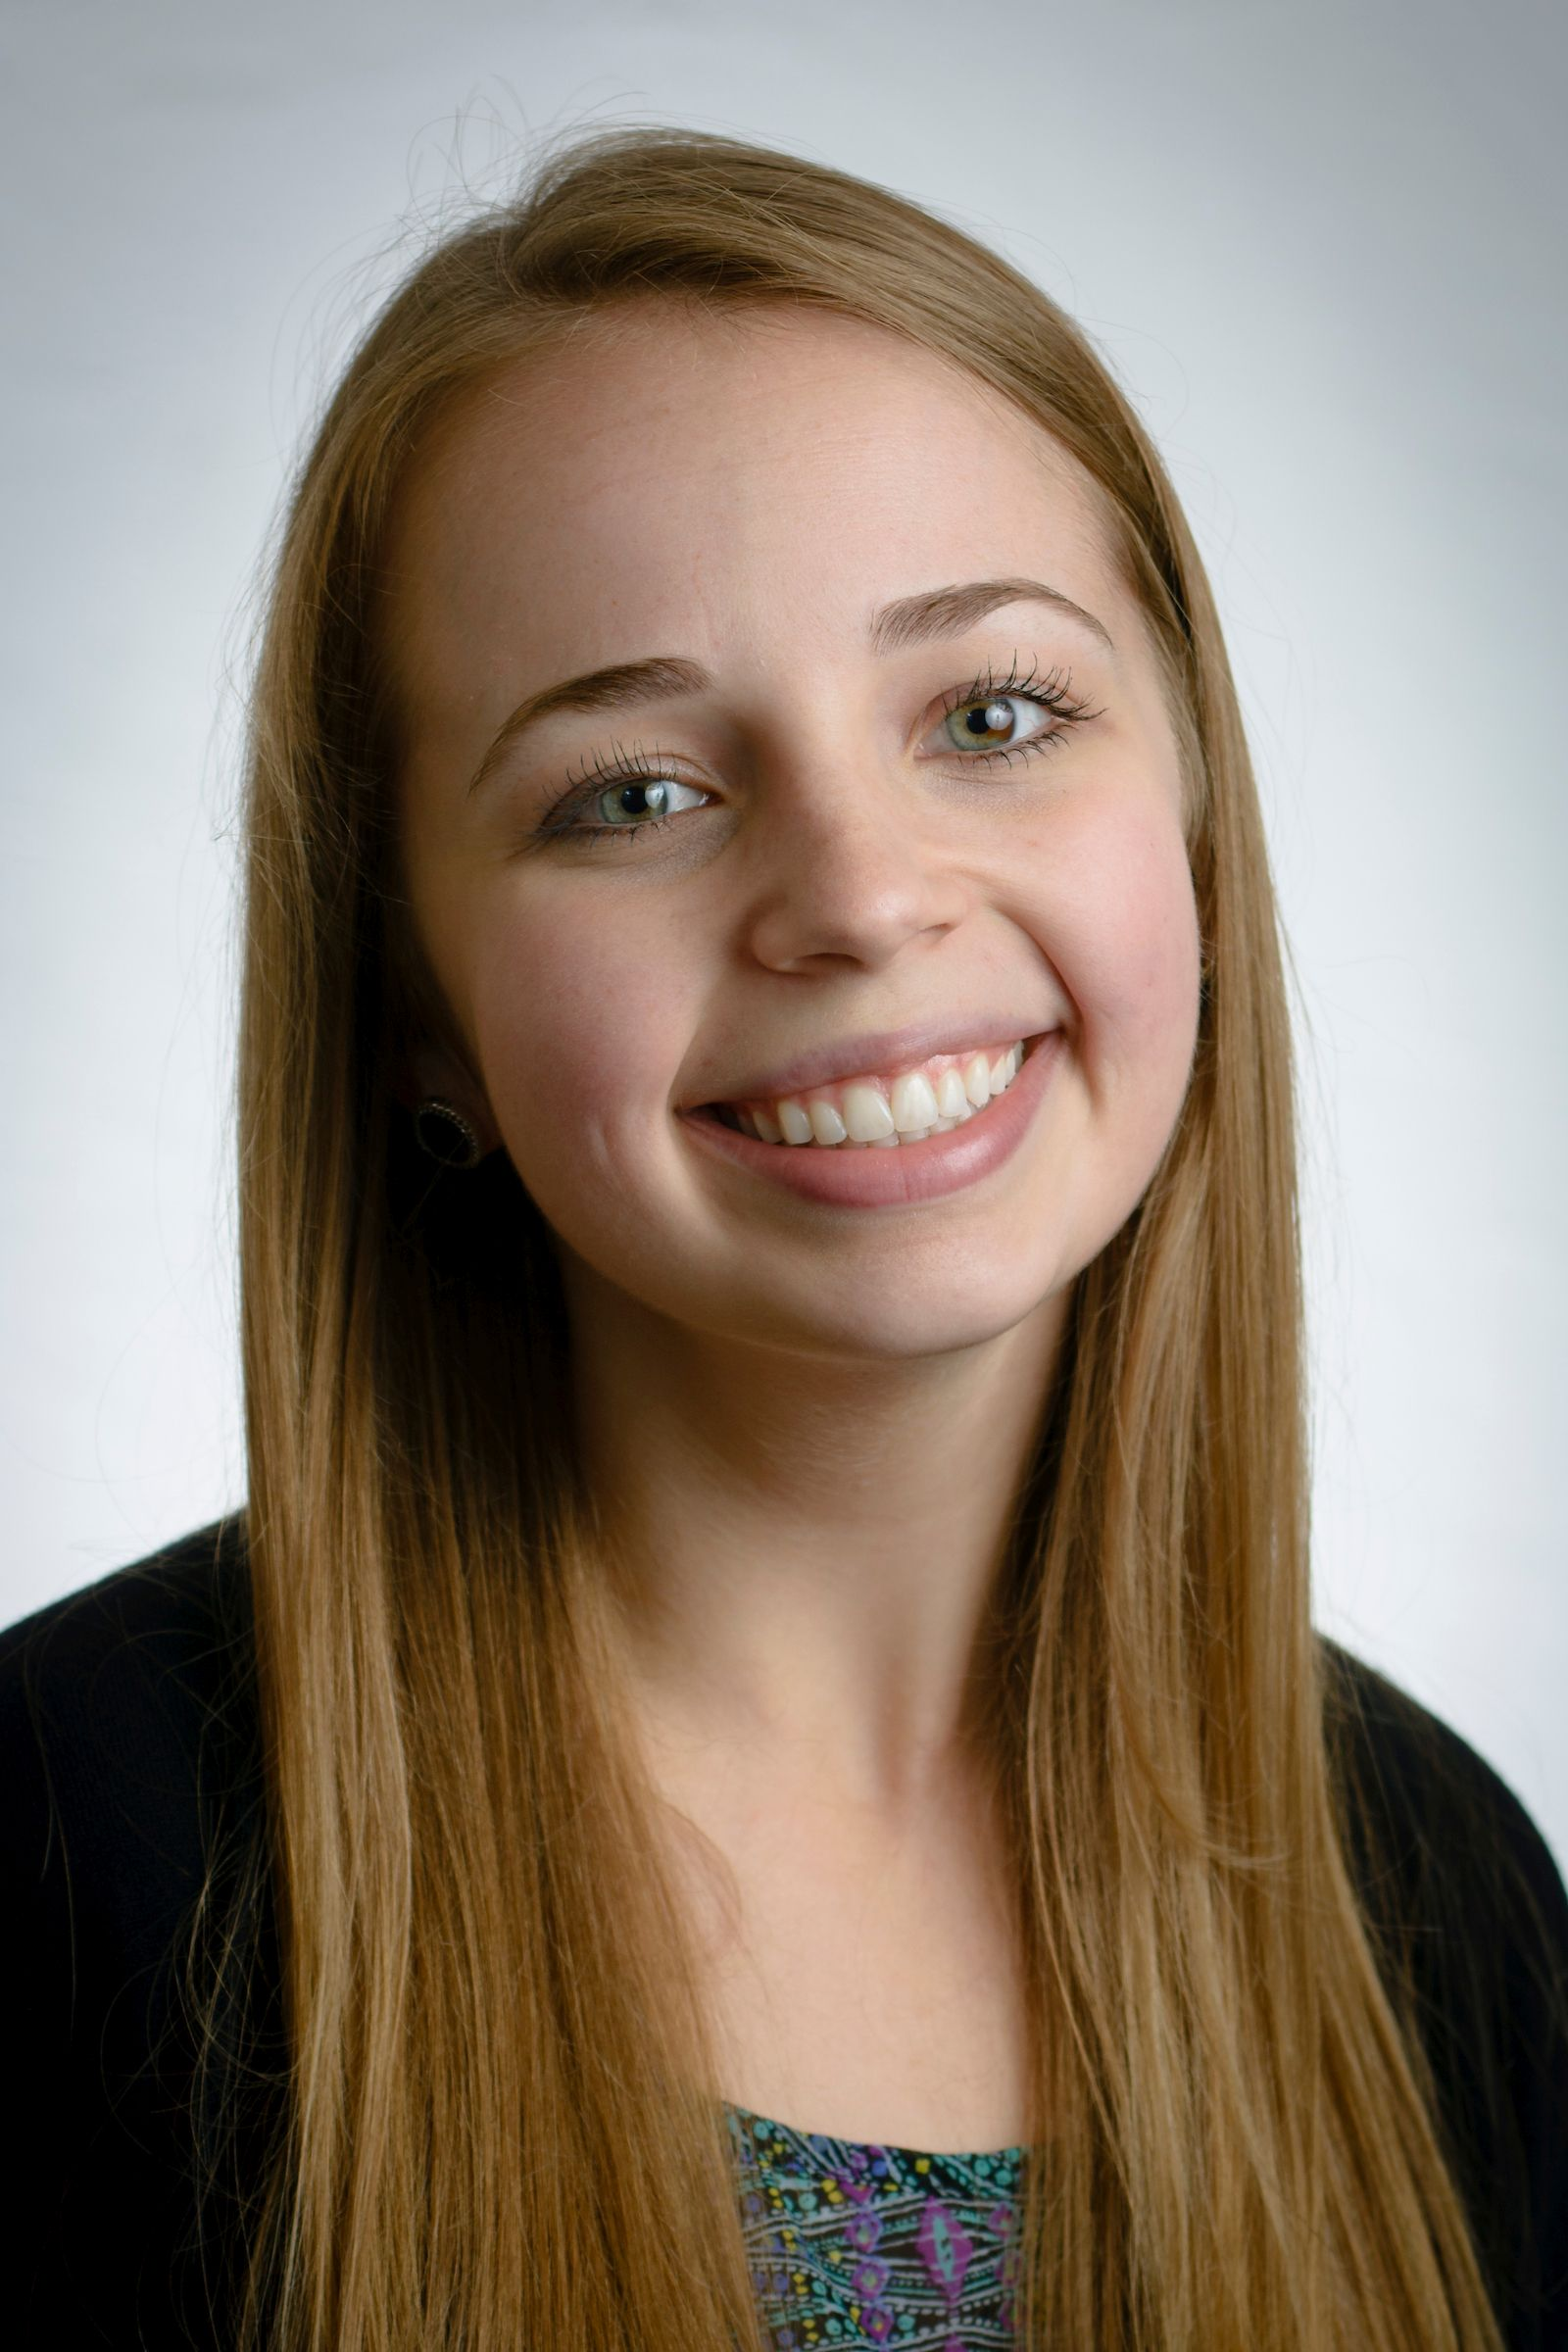 Staff Photo of Haley Zielinksi